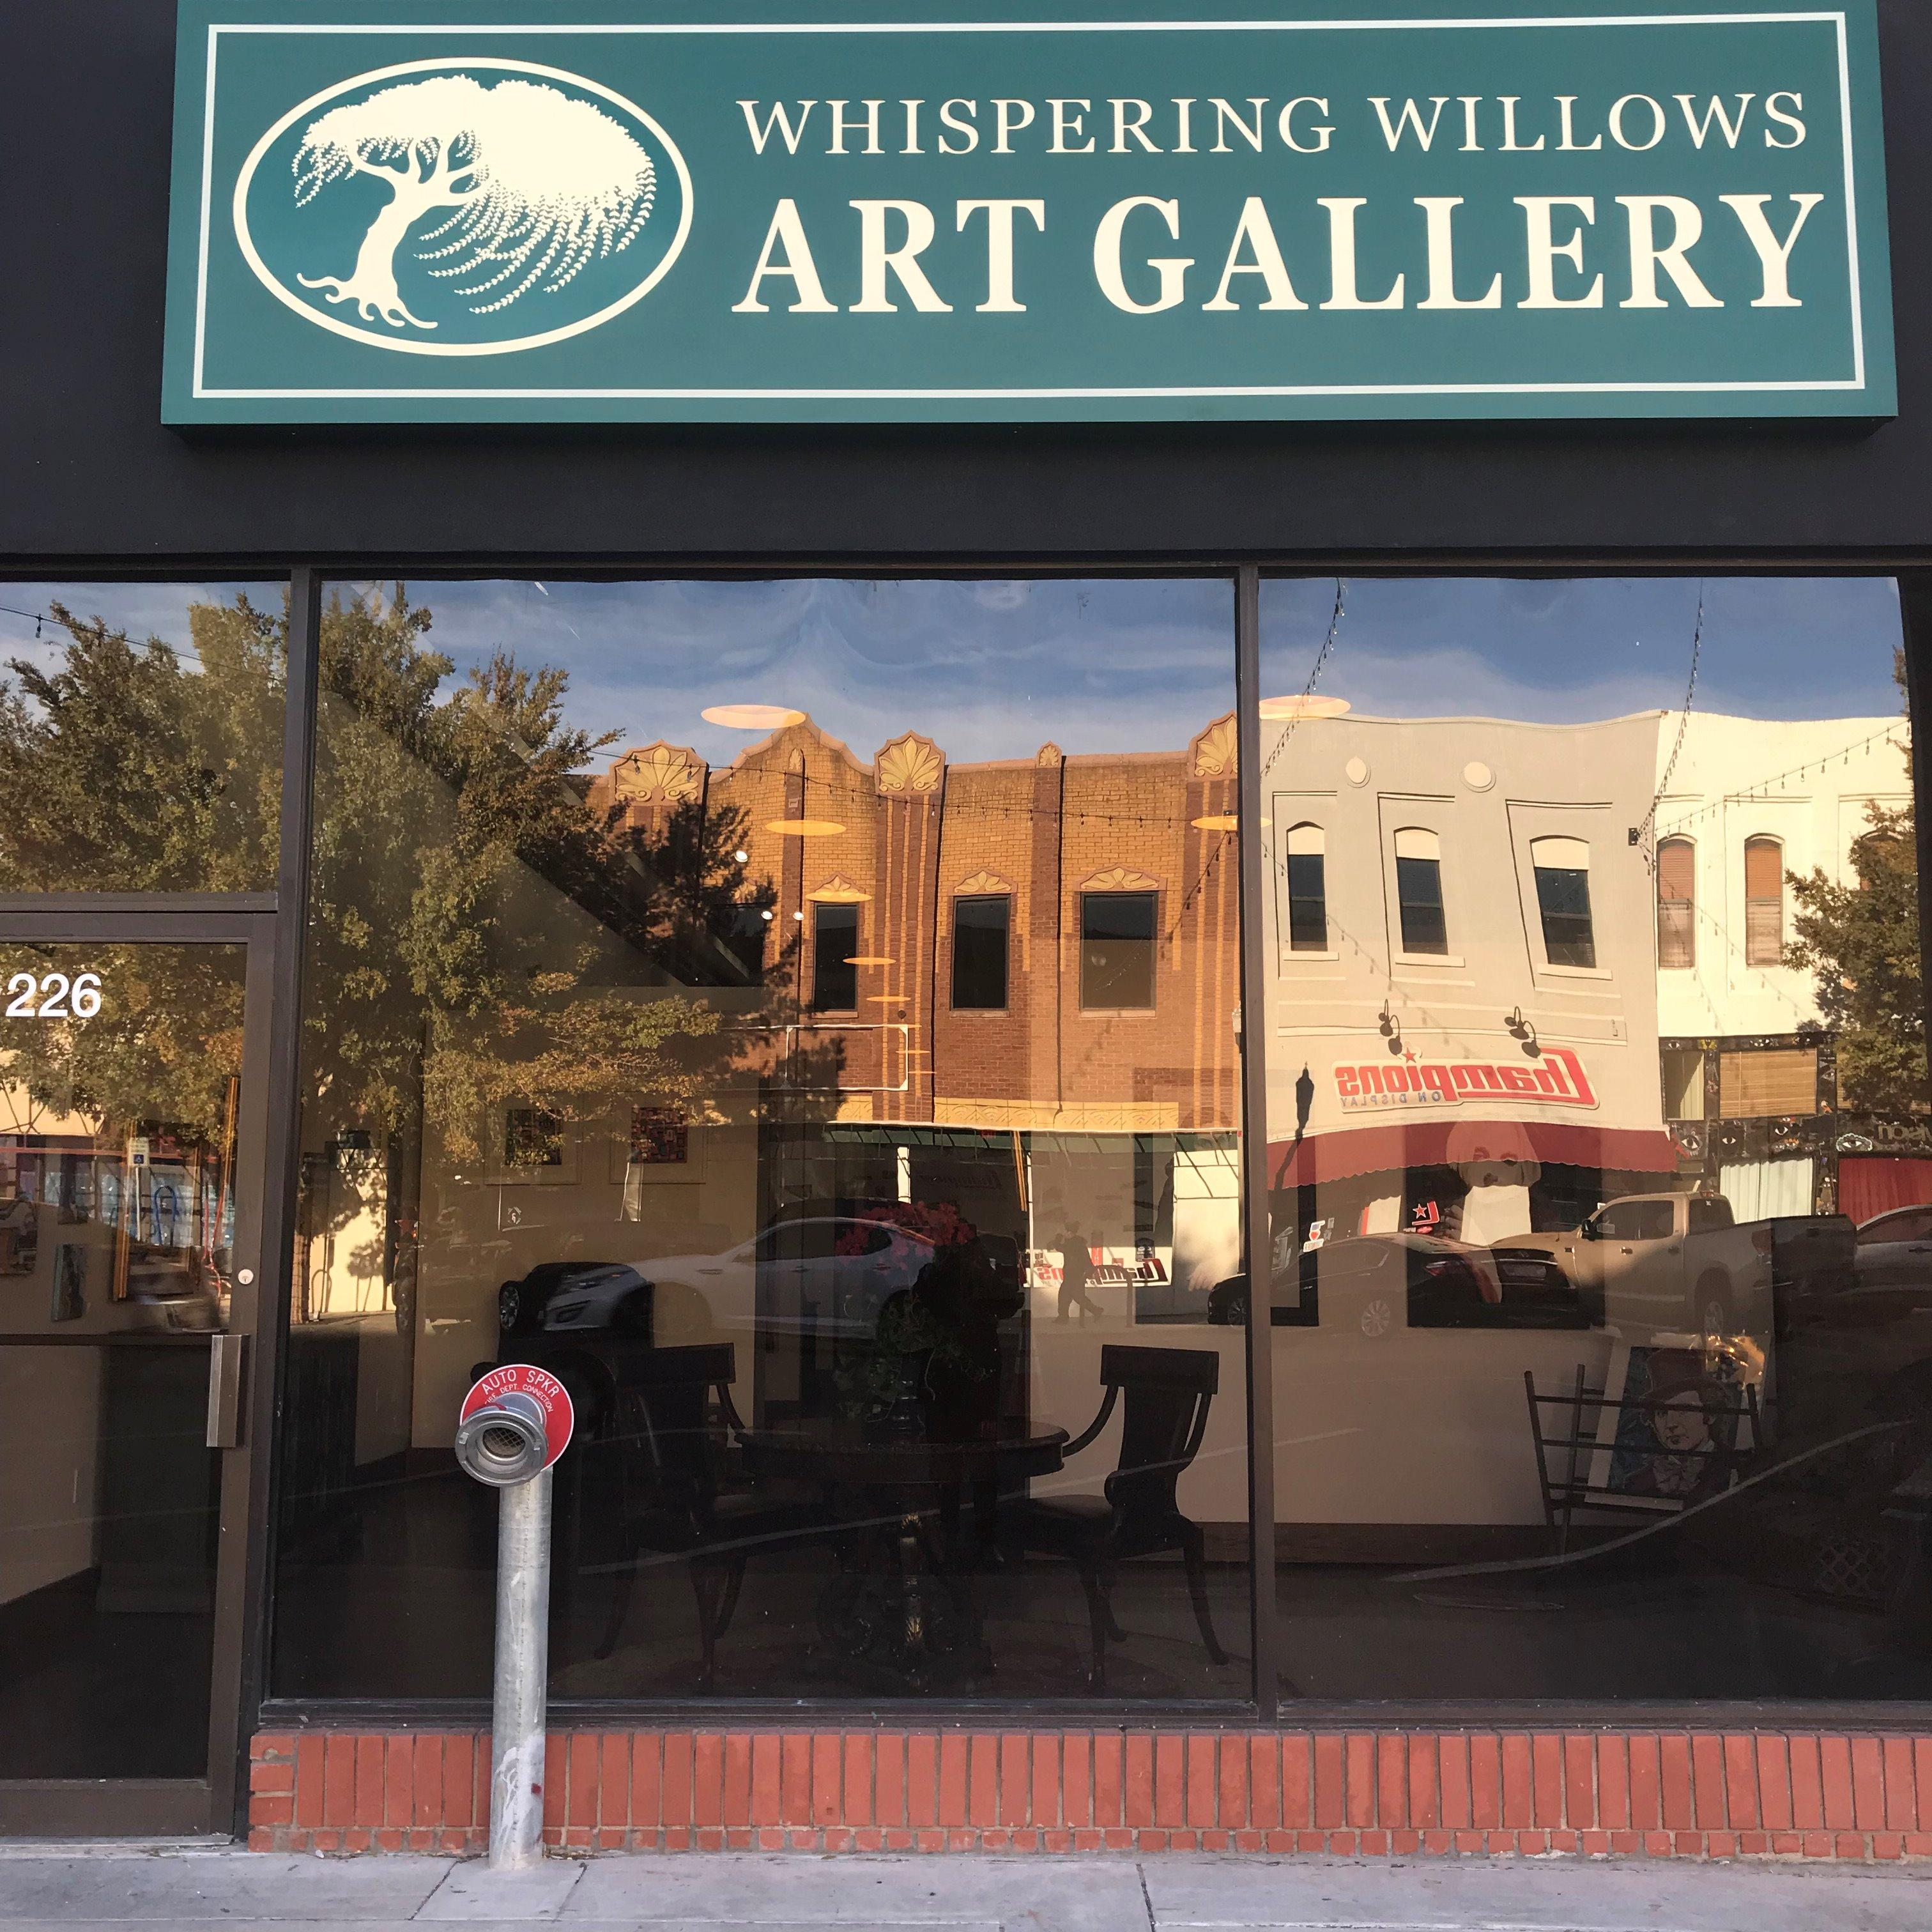 Whispering Willows Art Gallery